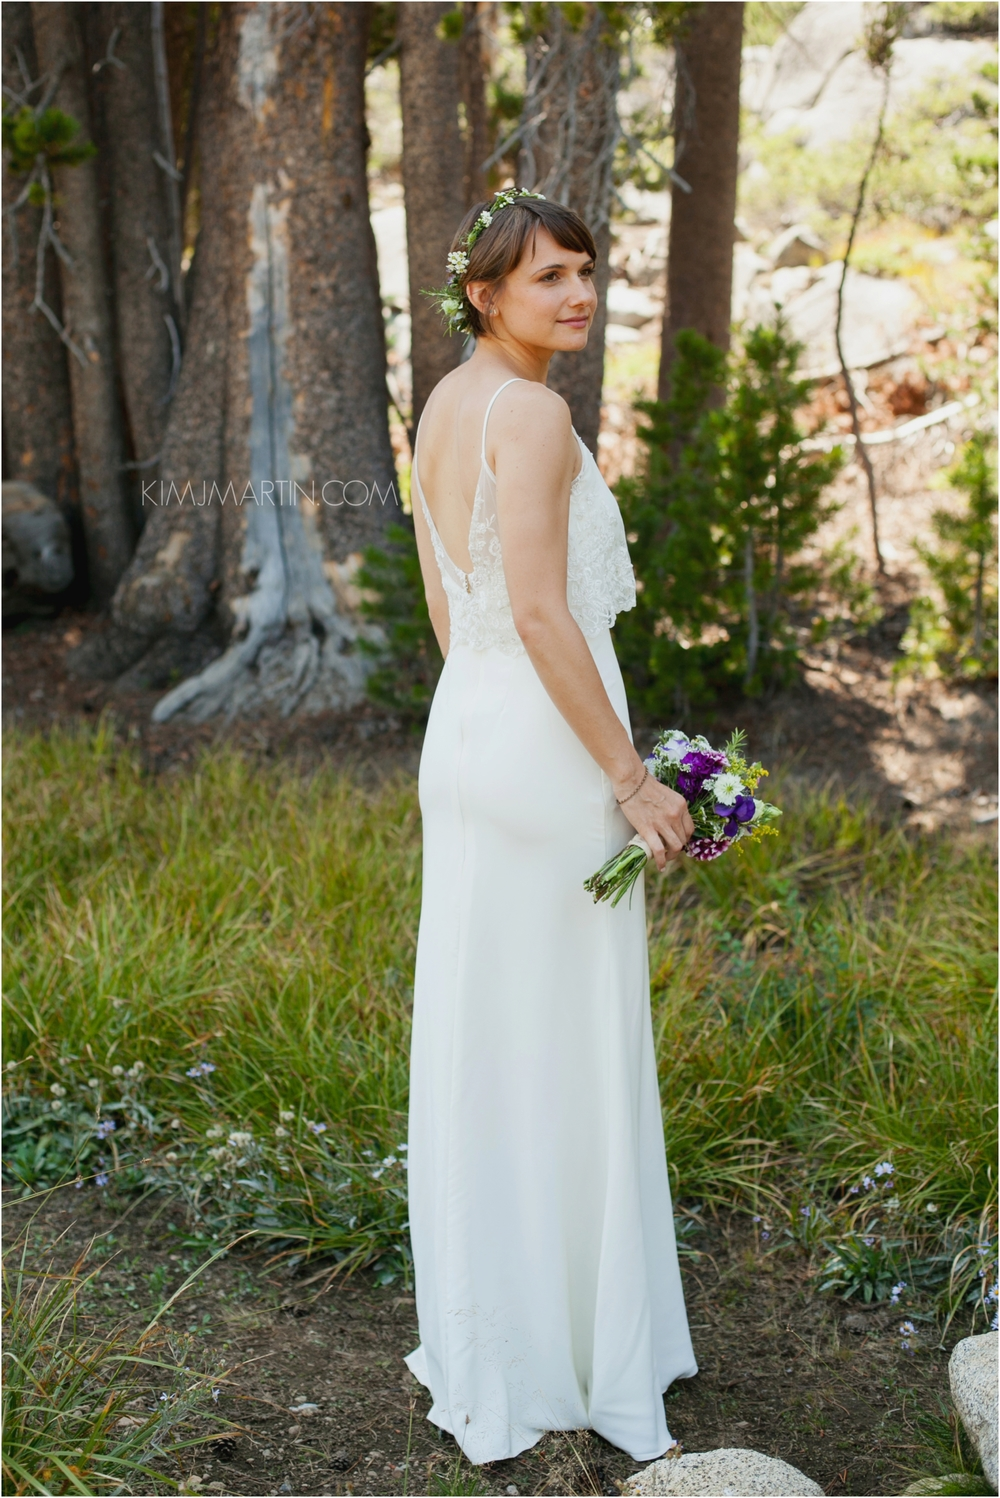 Custom Silk charmeuse dress with beaded lace cropped top overlay for an amazing bride's dreamy wedding in beautiful Tahoe. Photo by Kim J Martin.